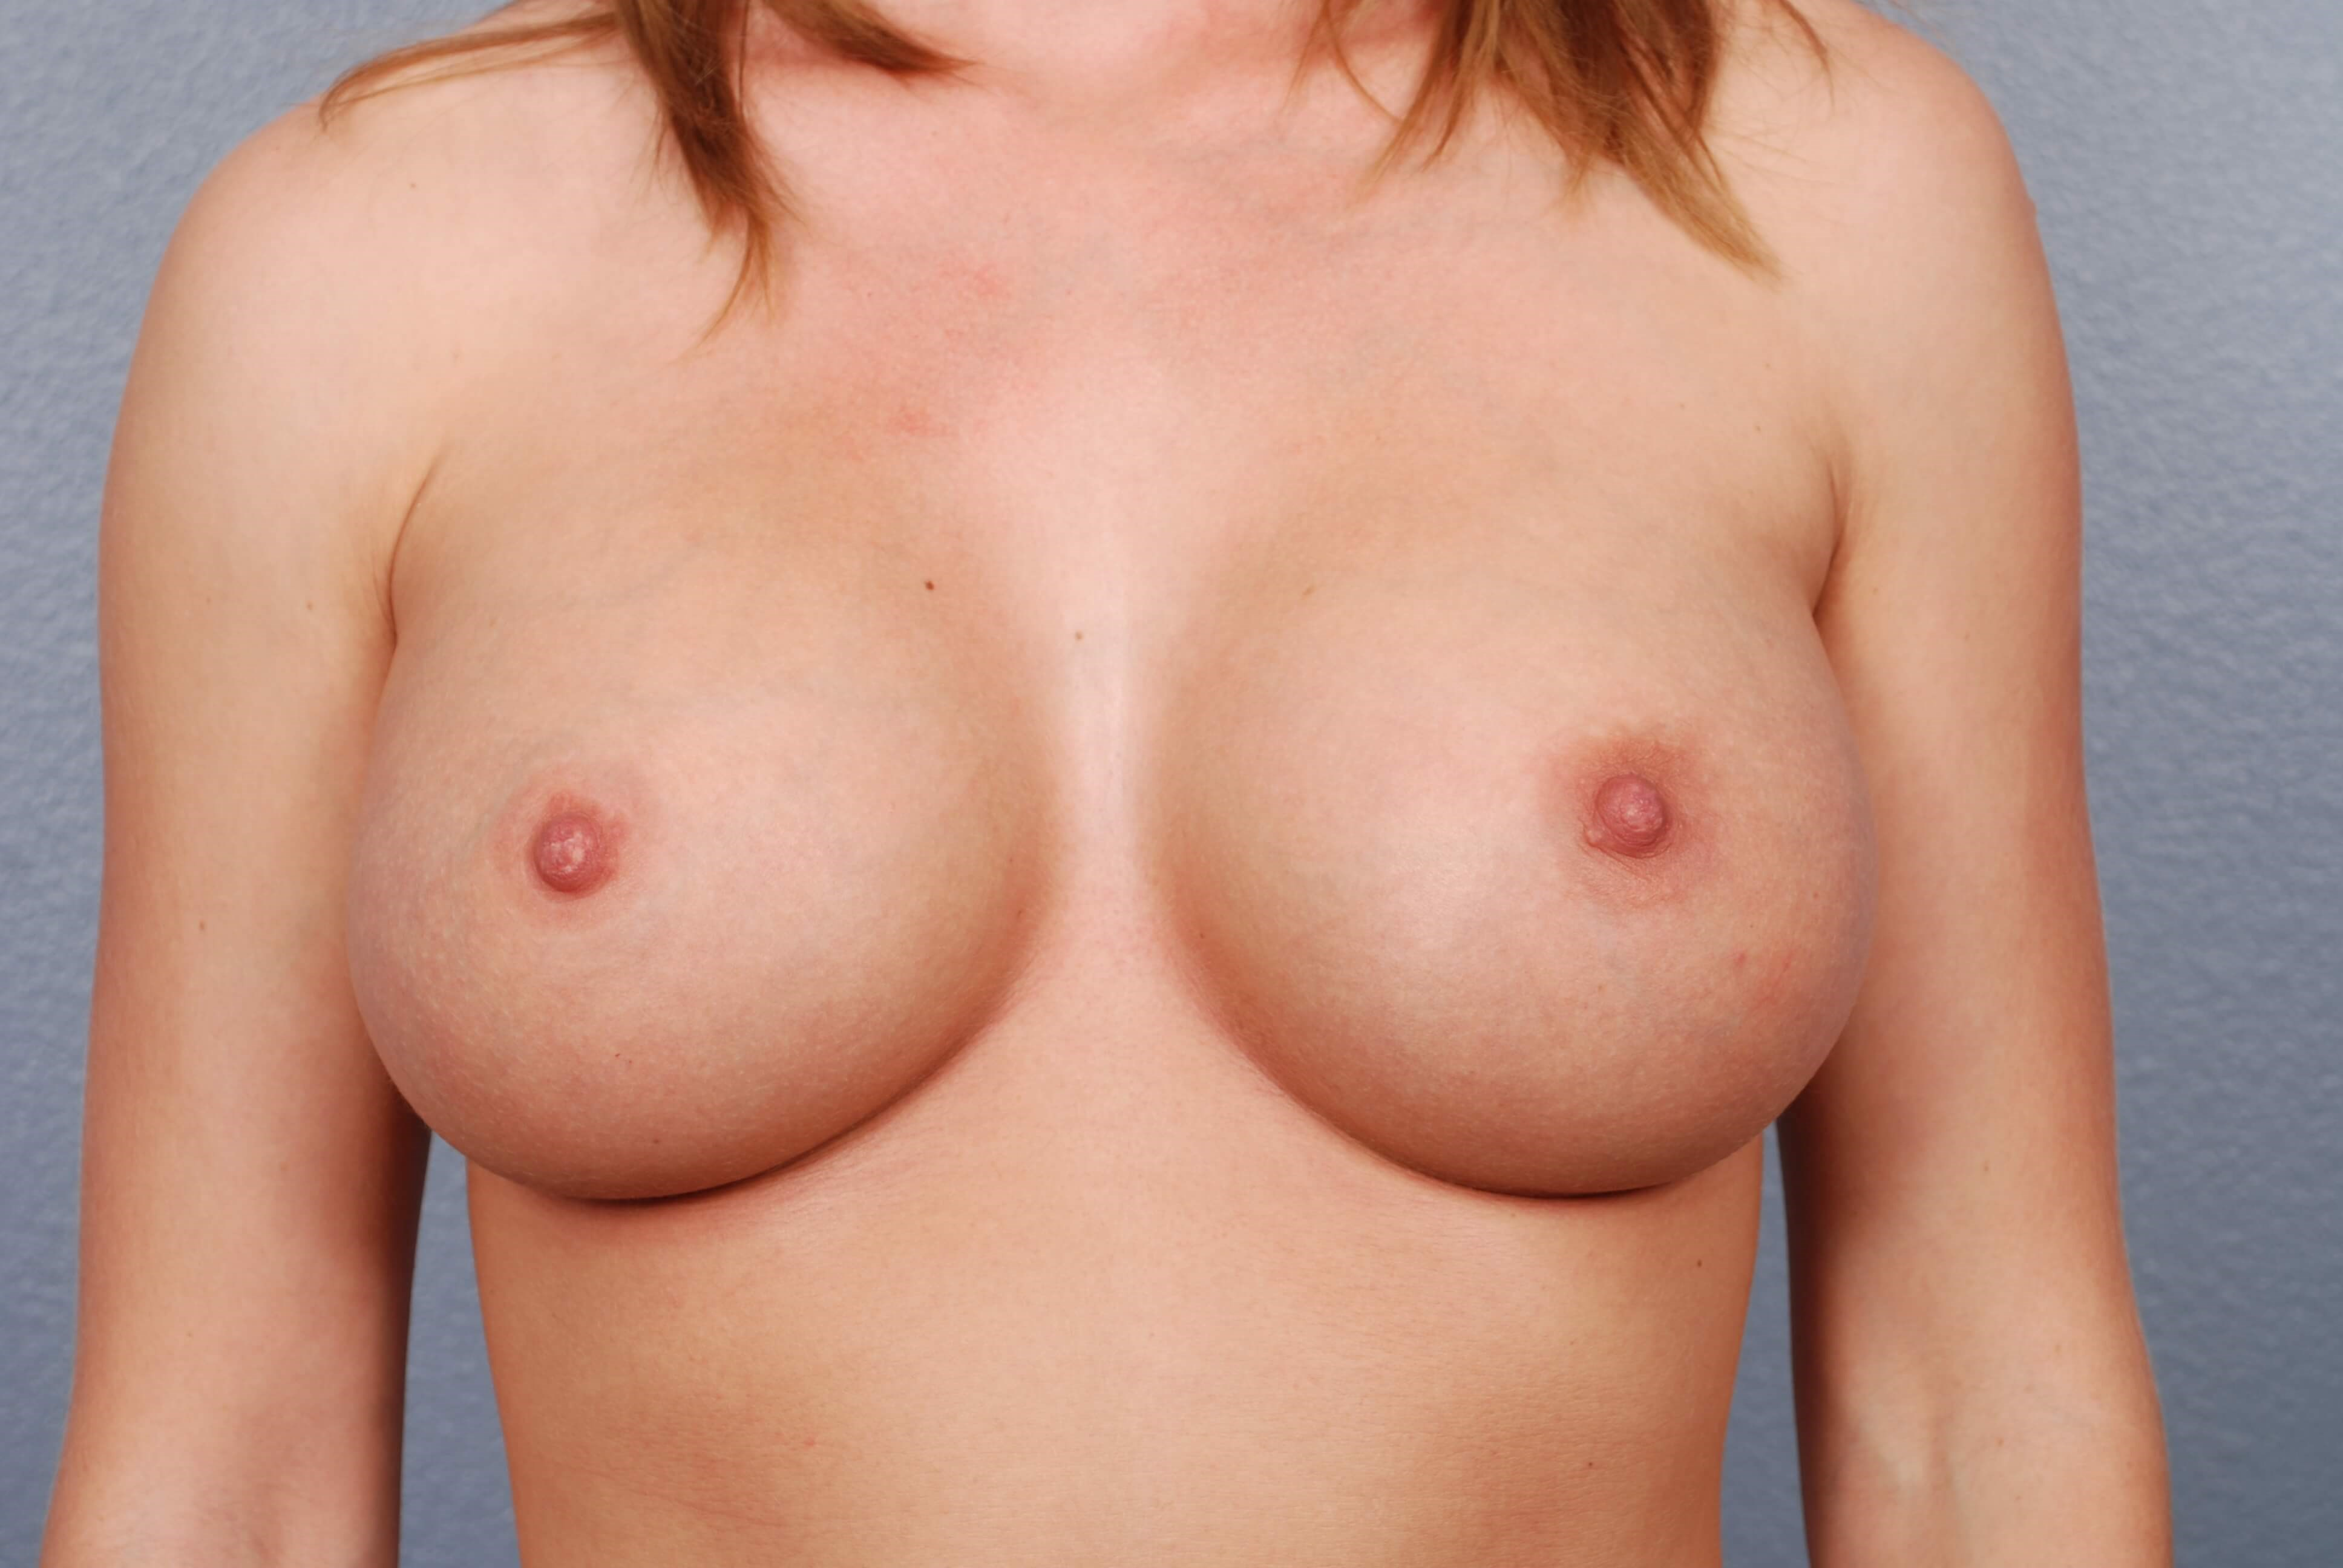 Front View - Breast Implants After Silicone Breast Implants